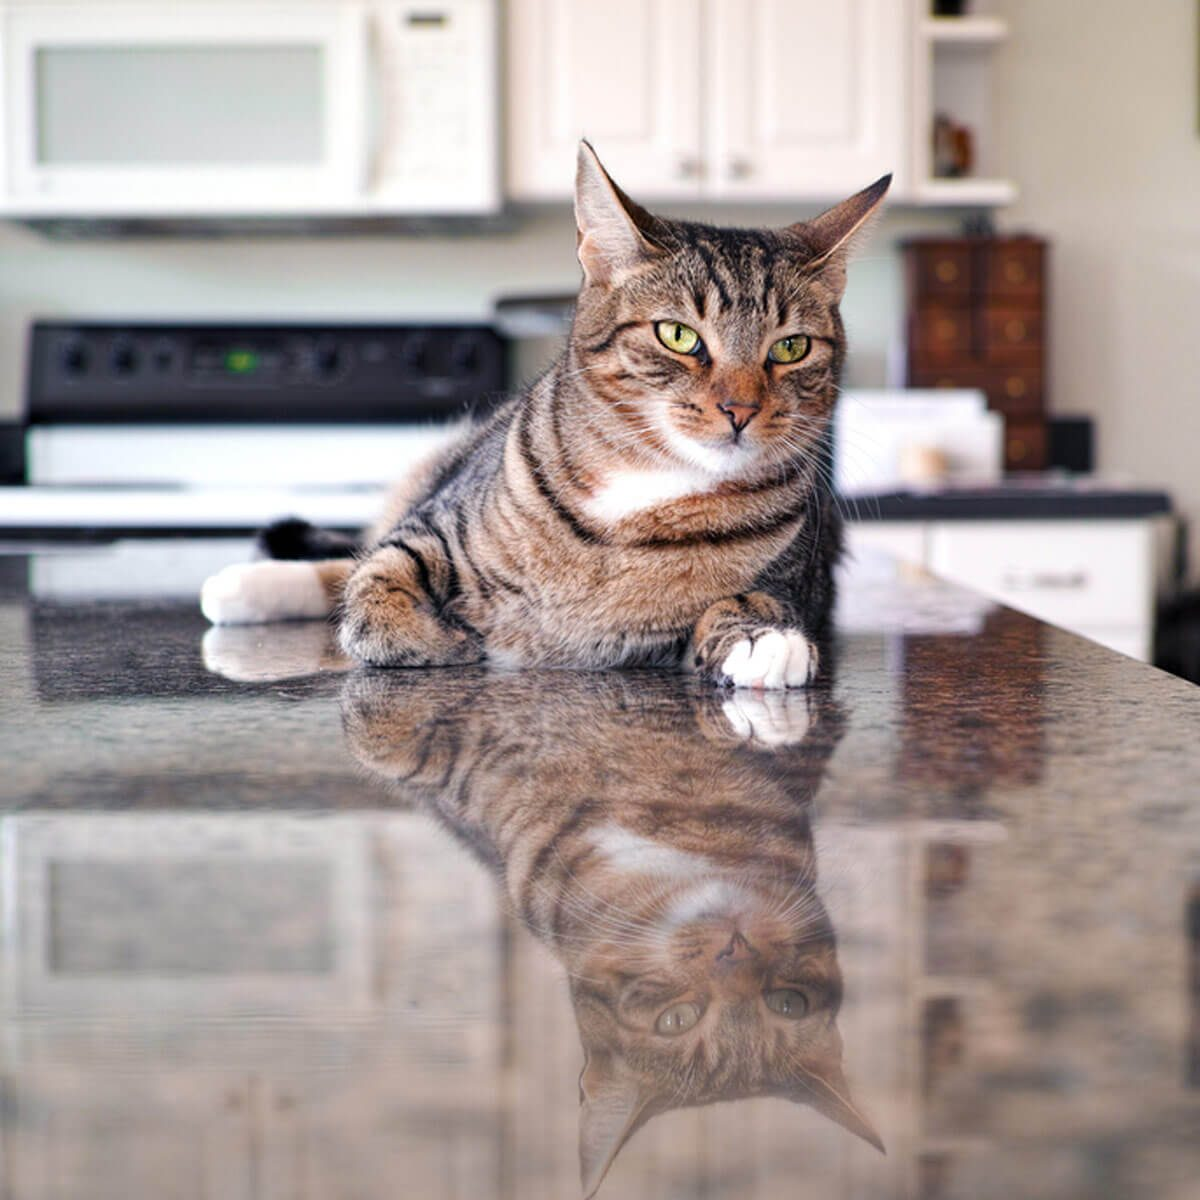 cat on kitchen countertop